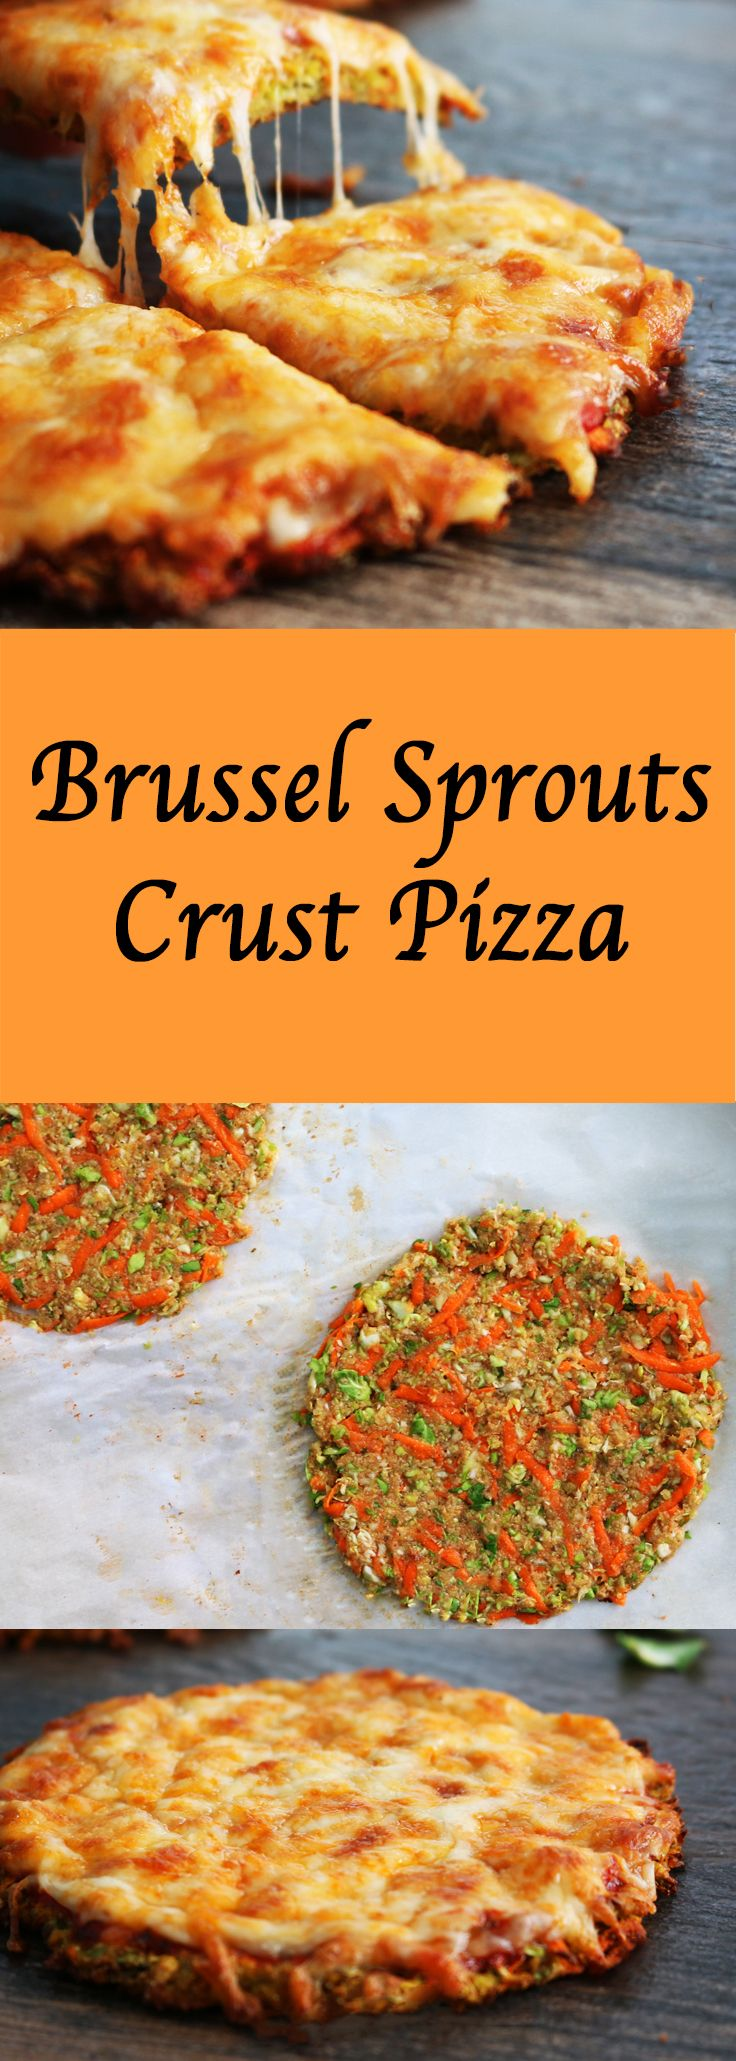 #brusselsprouts #carrot #cheese #pizza #healthypizza #healthy #healthycrust #kidsfriendly #kids #snack #vegetable #veggiepizza #dinner #lunch #friday #tgif http://www.kitchenathoskins.com/2017/02/28/brussel-sprouts-crust-pizza/